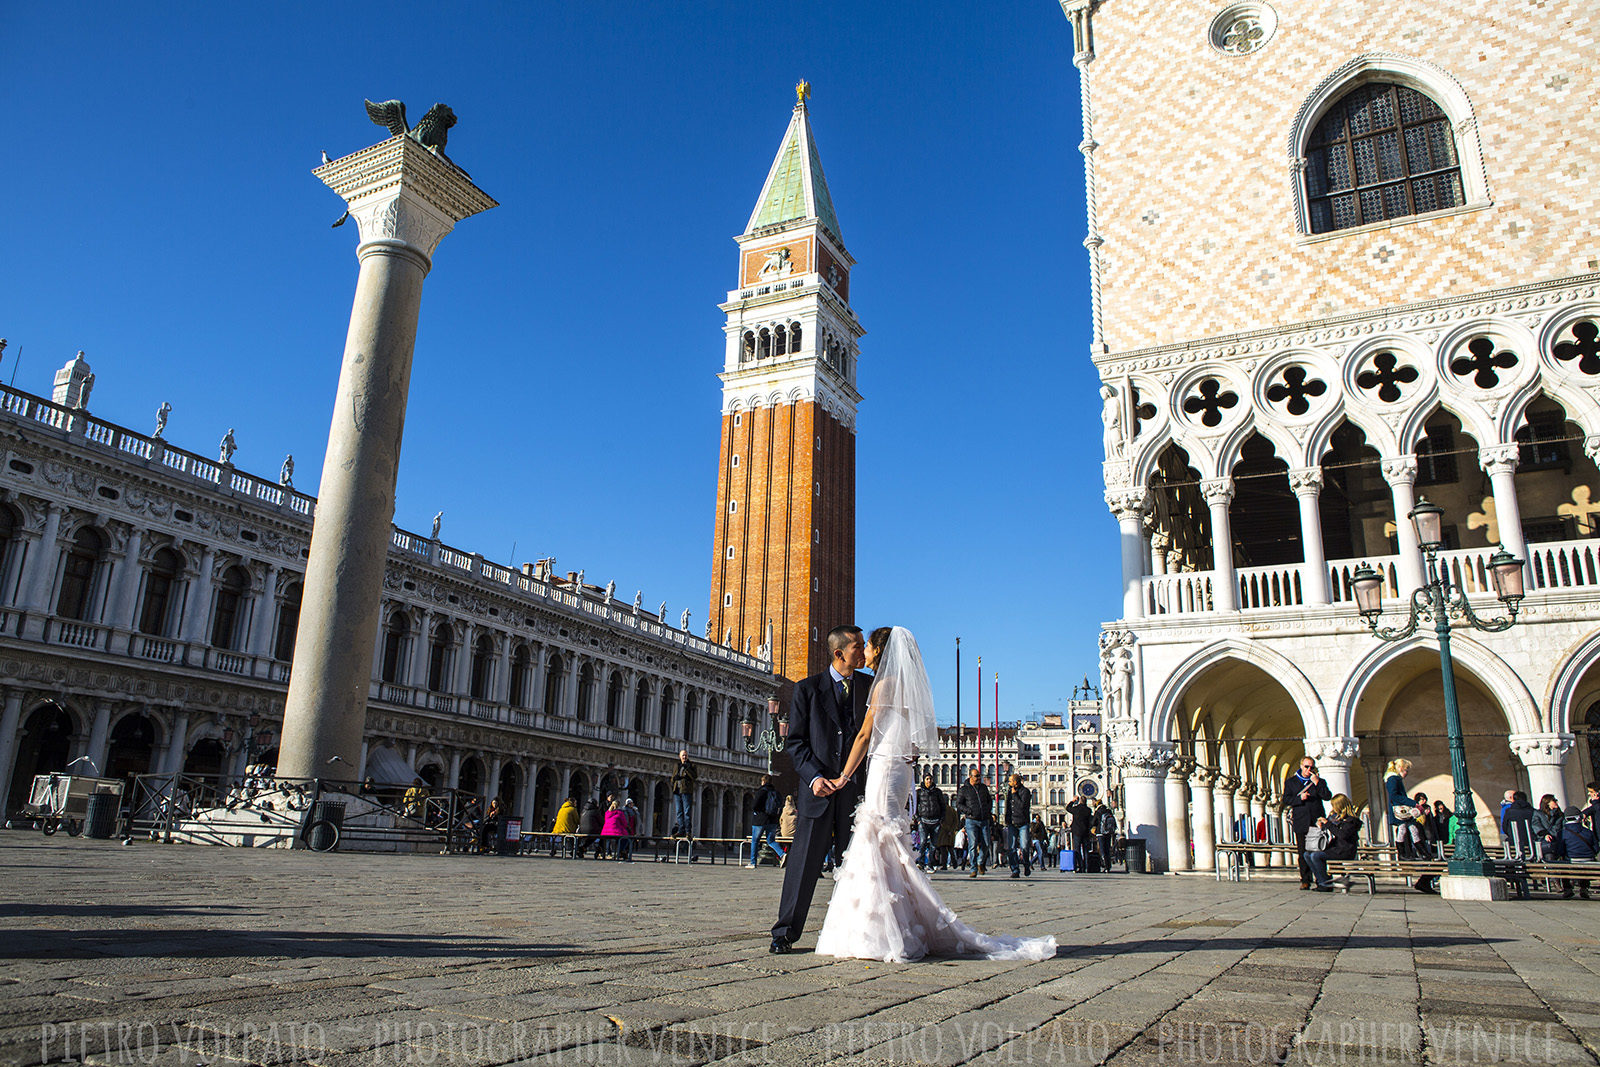 Photographer in Venice for honeymoon photo shoot and couple vacation pictures ~ Romantic and fun photo walk in Venice